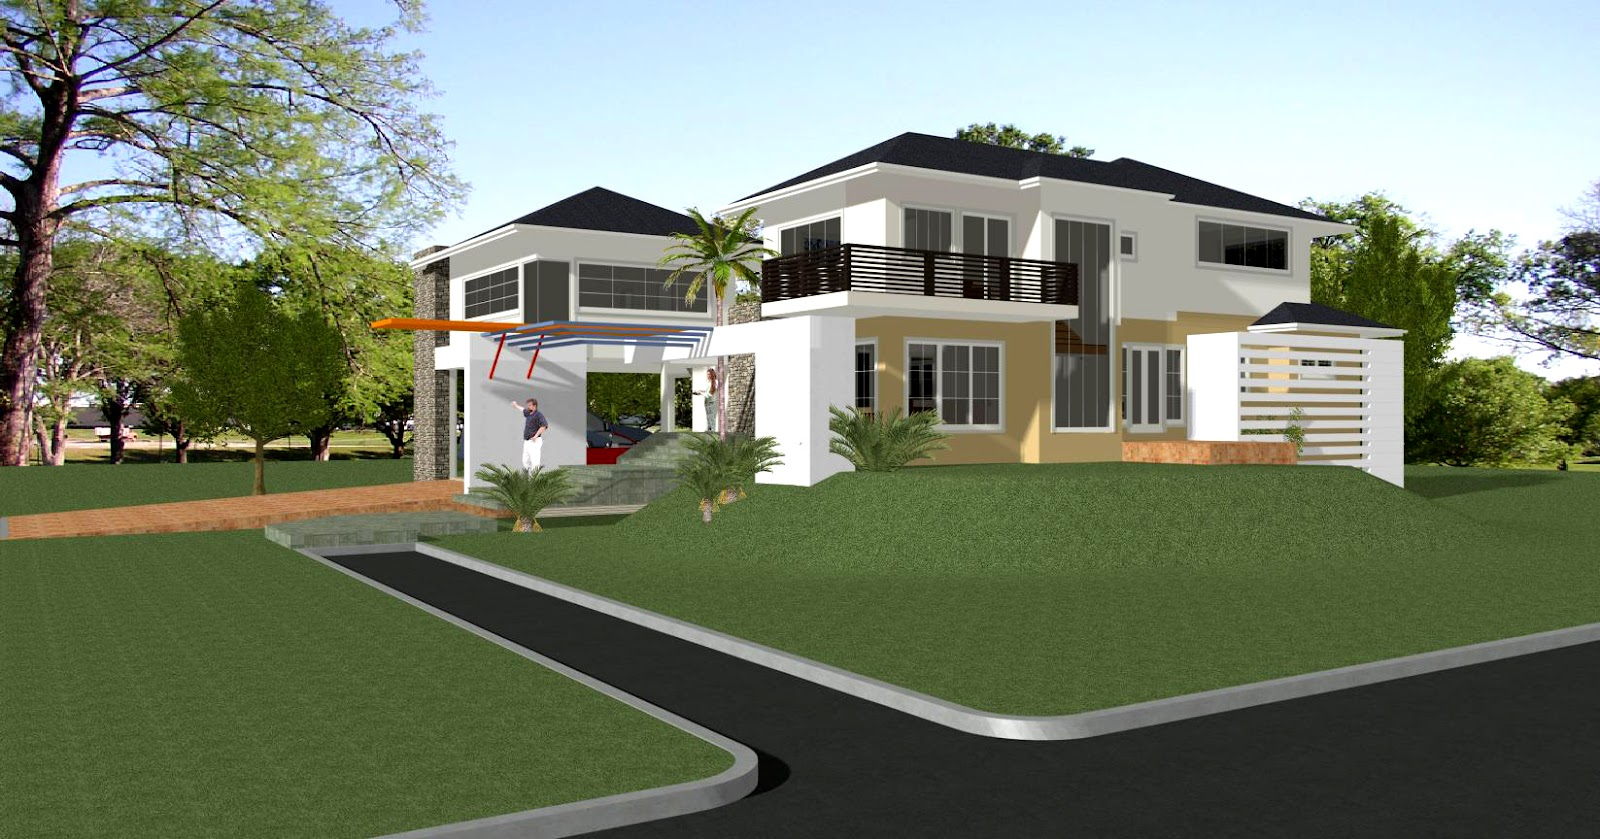 House designs in the philippines in iloilo by erecre group for Construction house plans